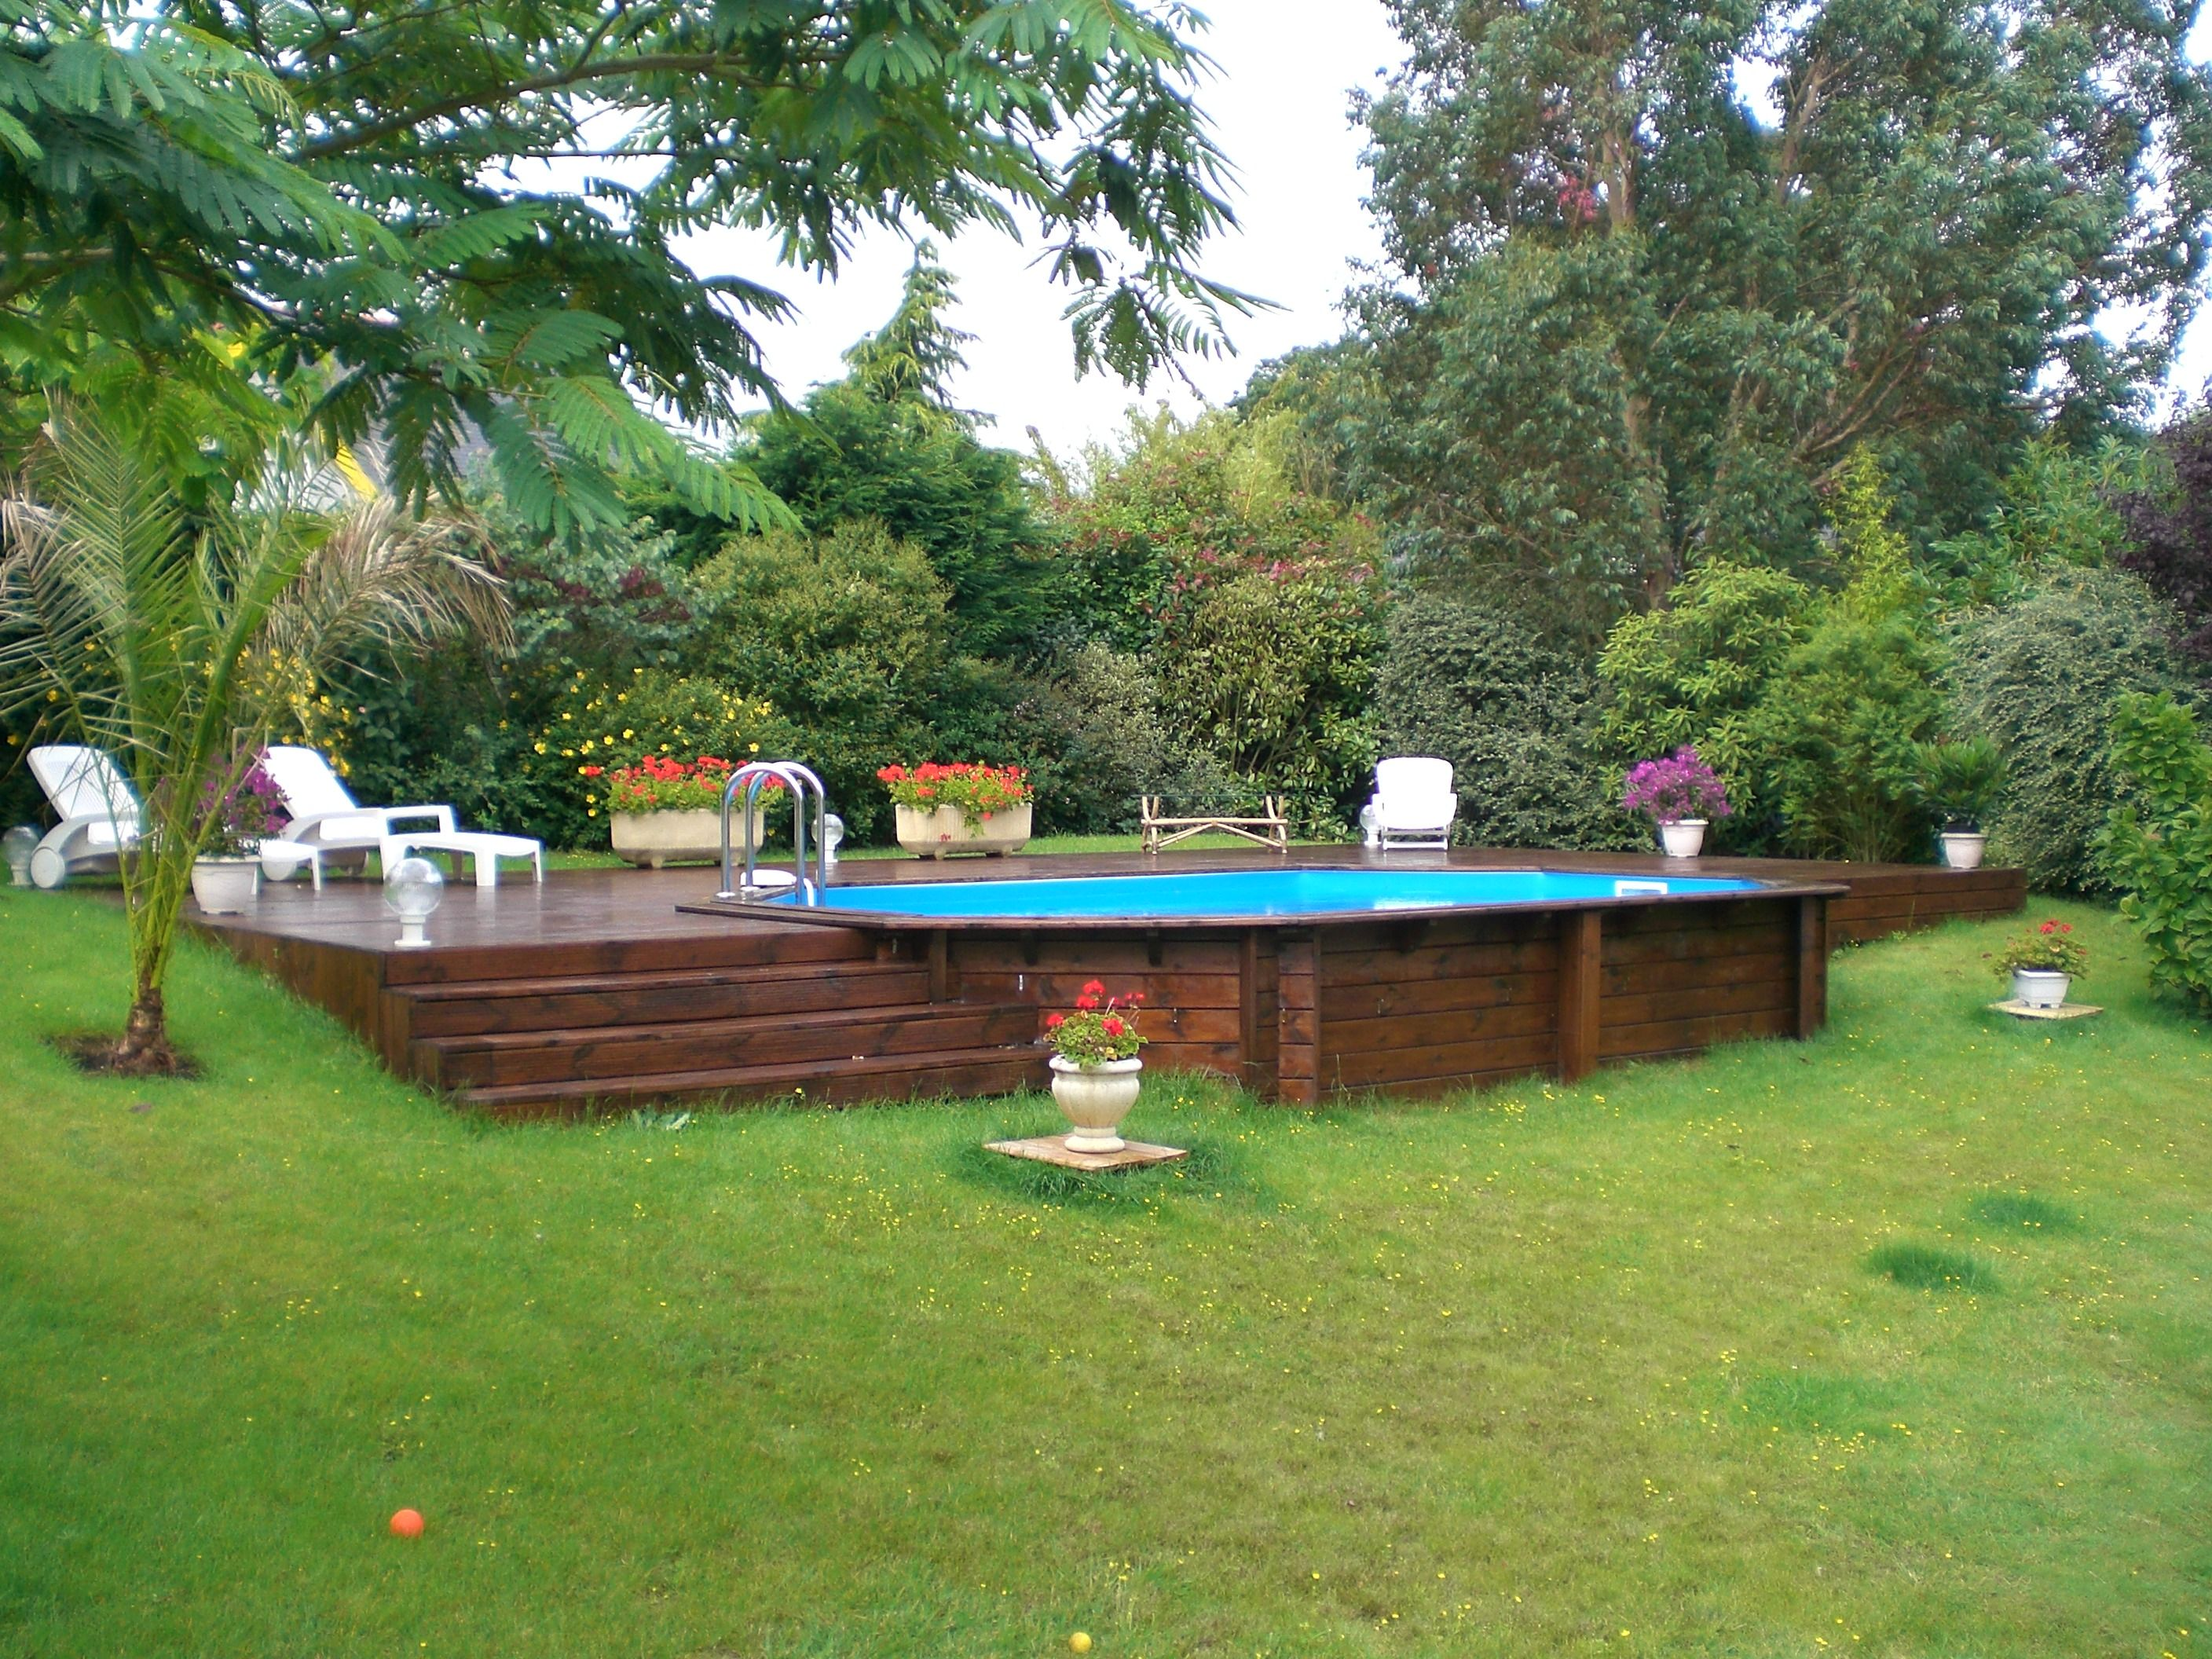 Piscine hors sol en bois semi enterr e sur terrain en for Piscine teck semi enterree